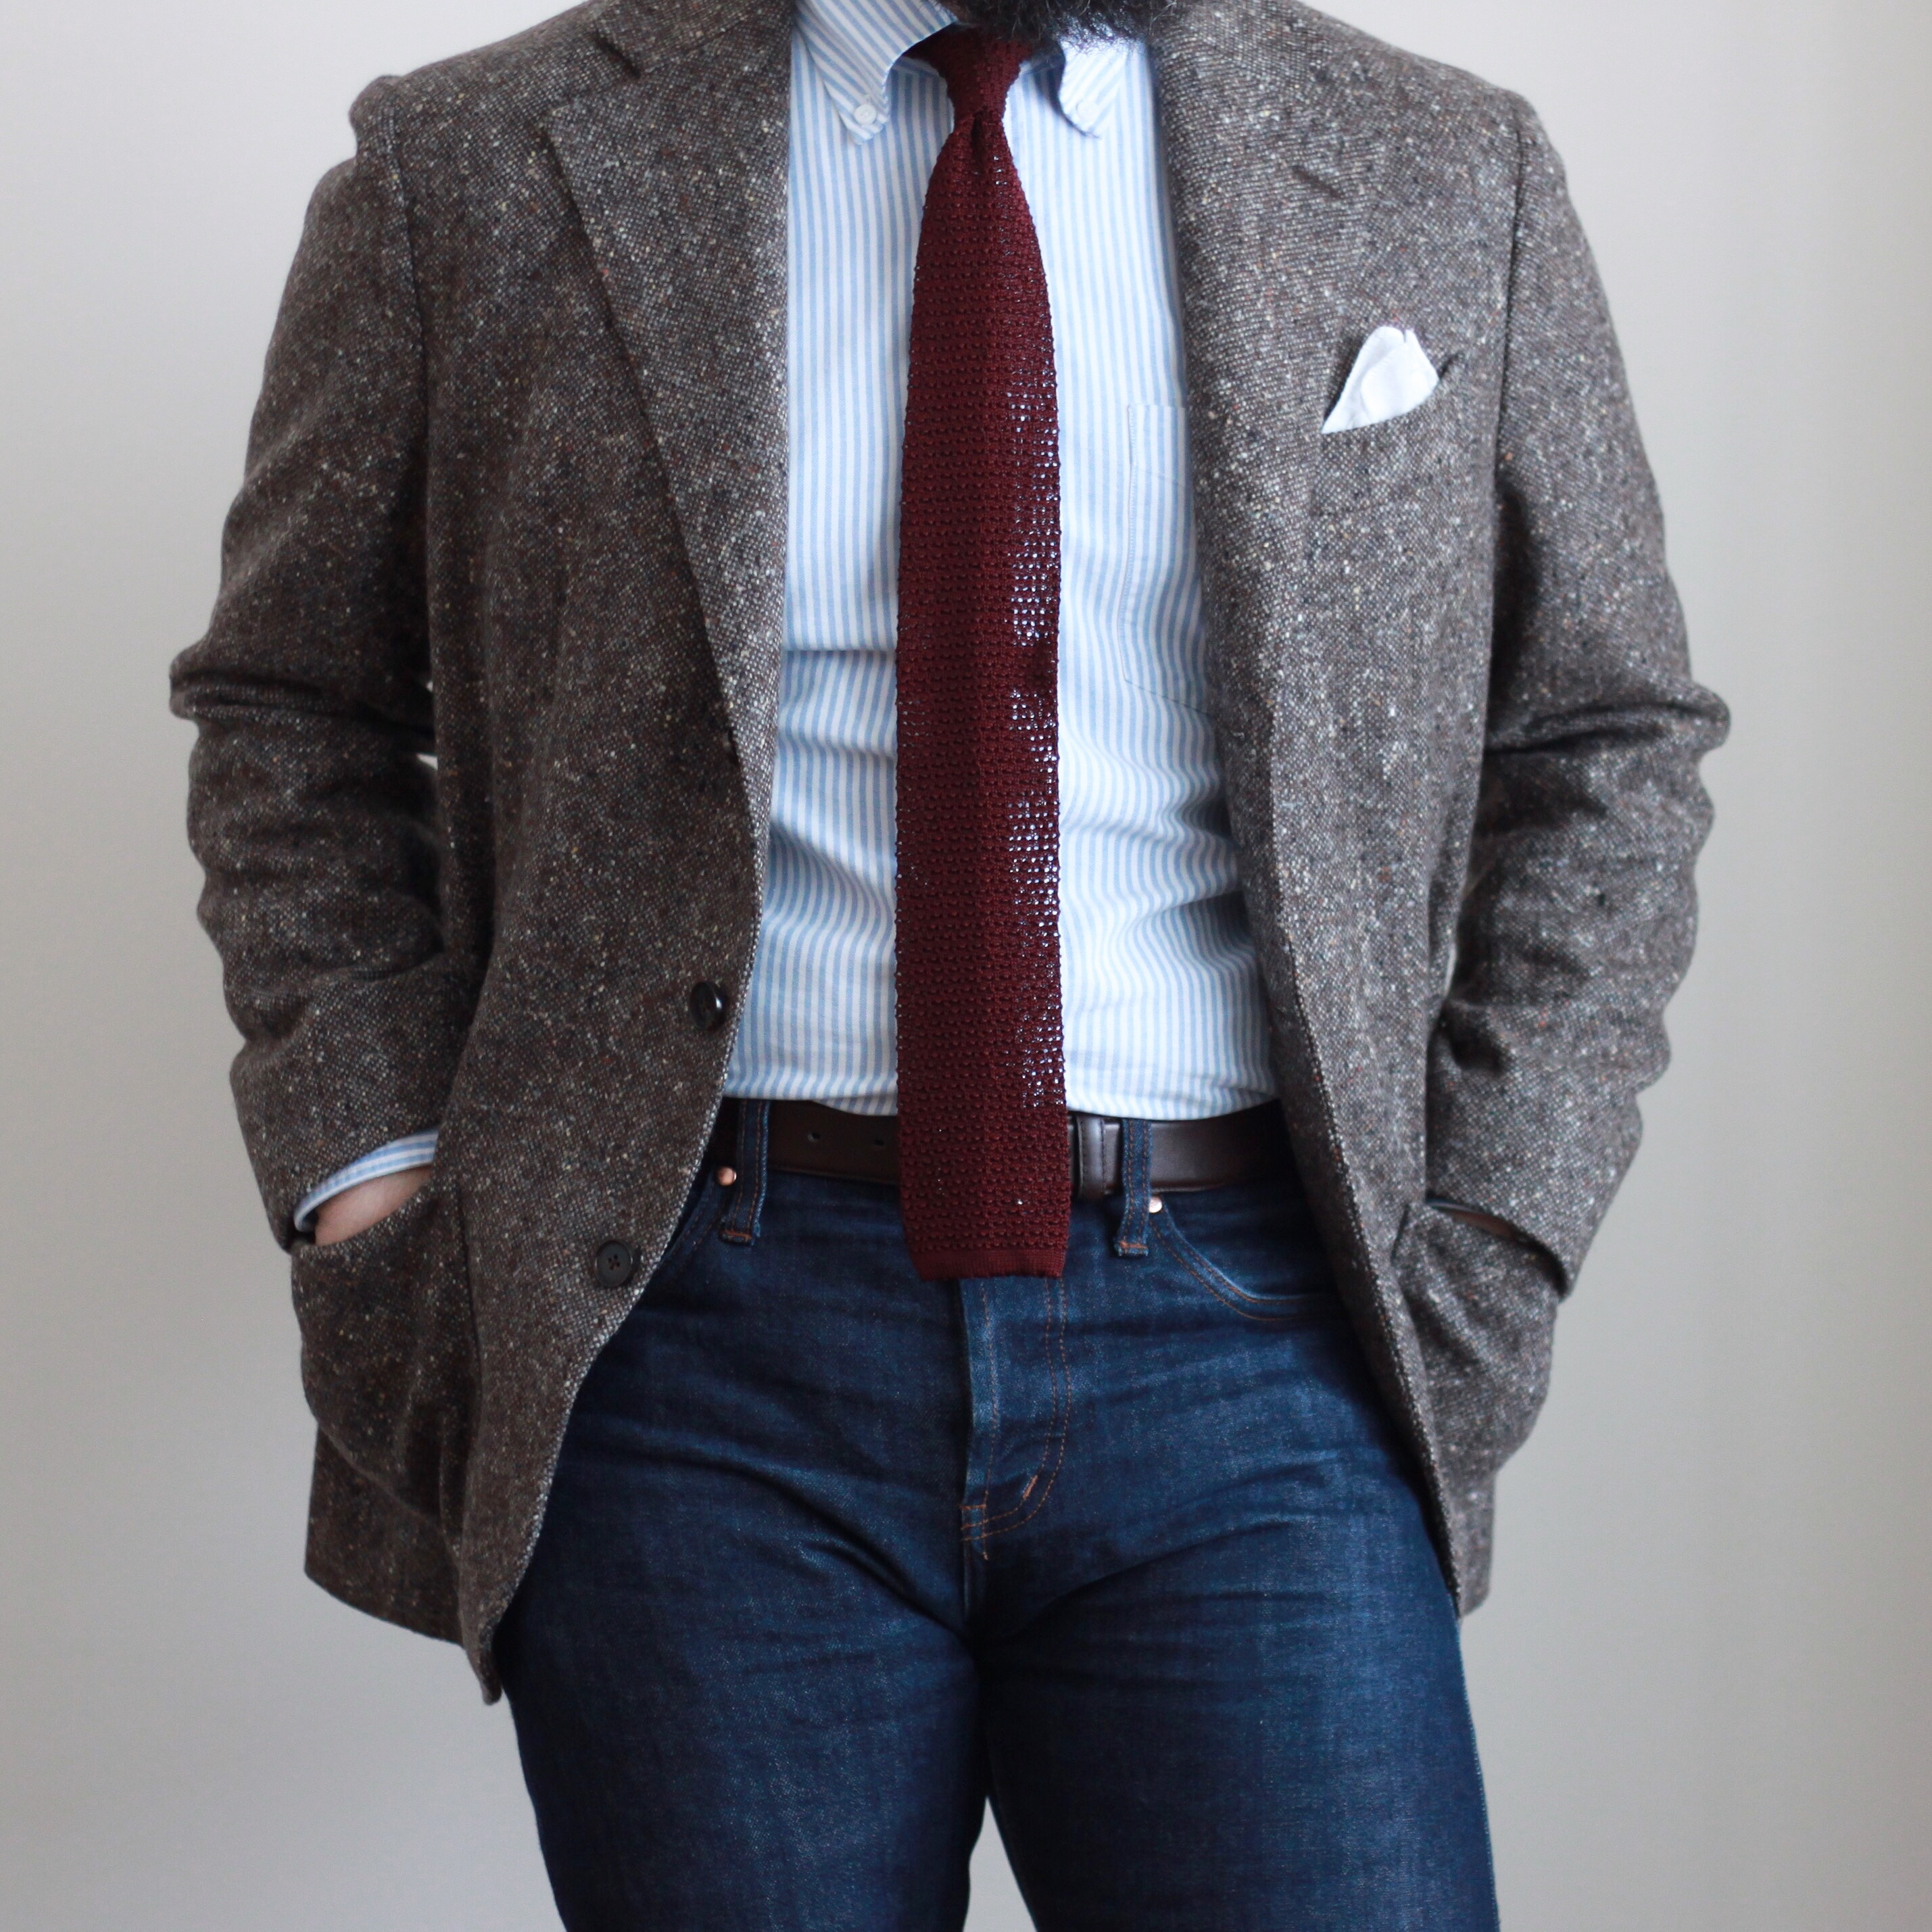 inspiration, insight, sport coat, jeans and tie, denim, OCBD, pocket square, menswear